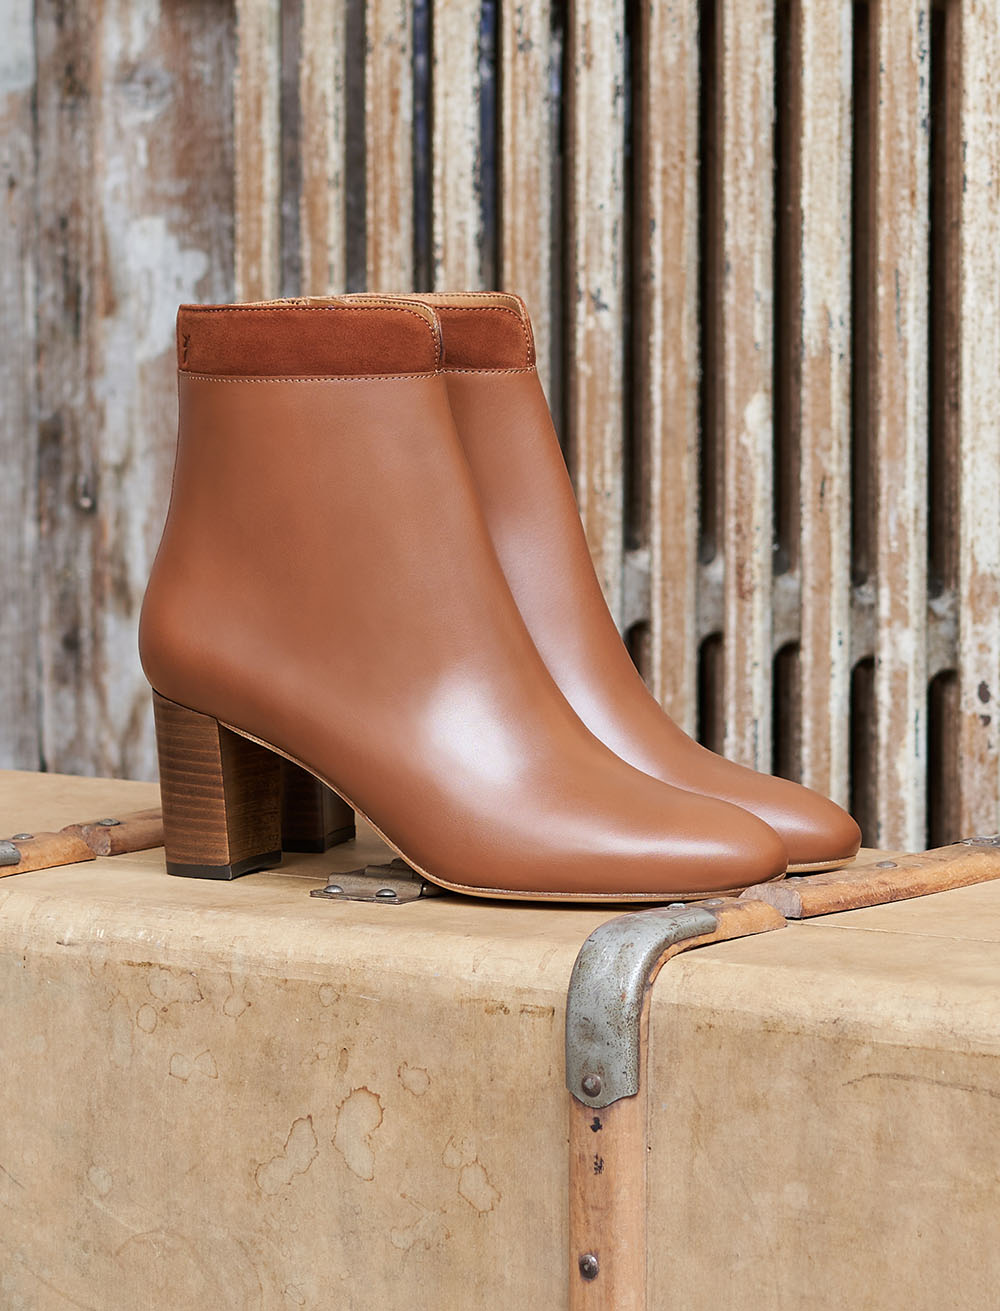 Céline Heeled Ankles Boots - cognac two-material